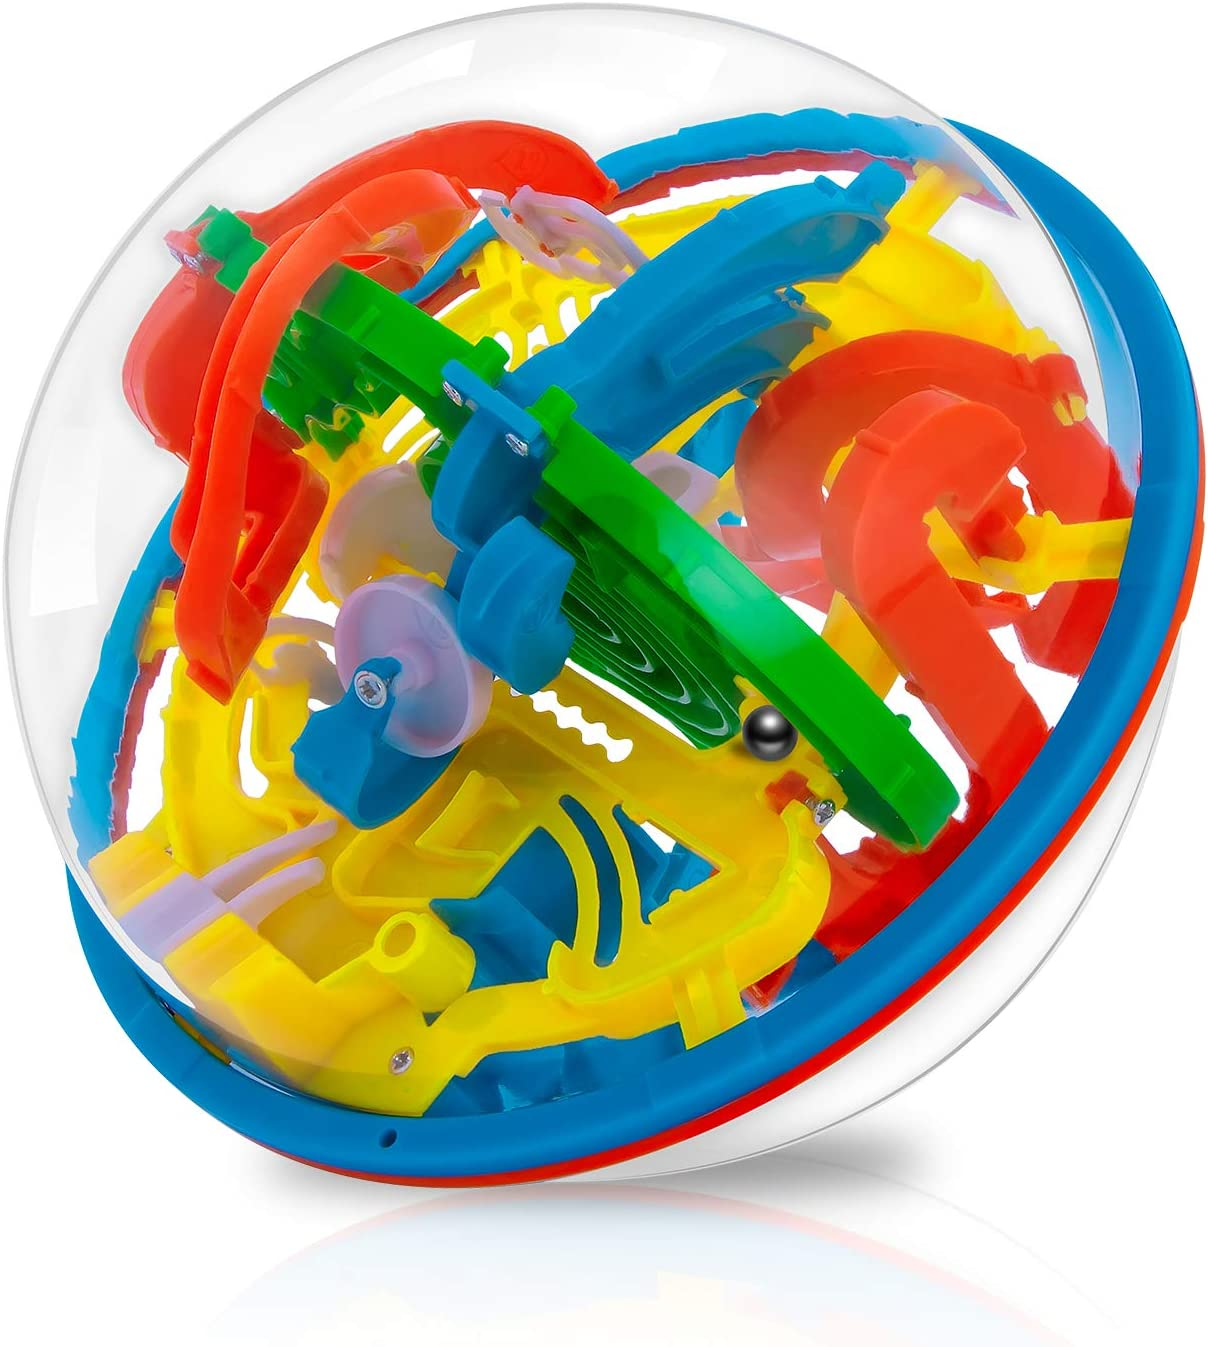 Maze Ball - WETONG 3D Puzzle Ball Games Toys for Kids (6.3'') with 118 Challenging Barriers Education 3D Labyrinth Ball Magical Maze Ball Brain Teasers Puzzles Games